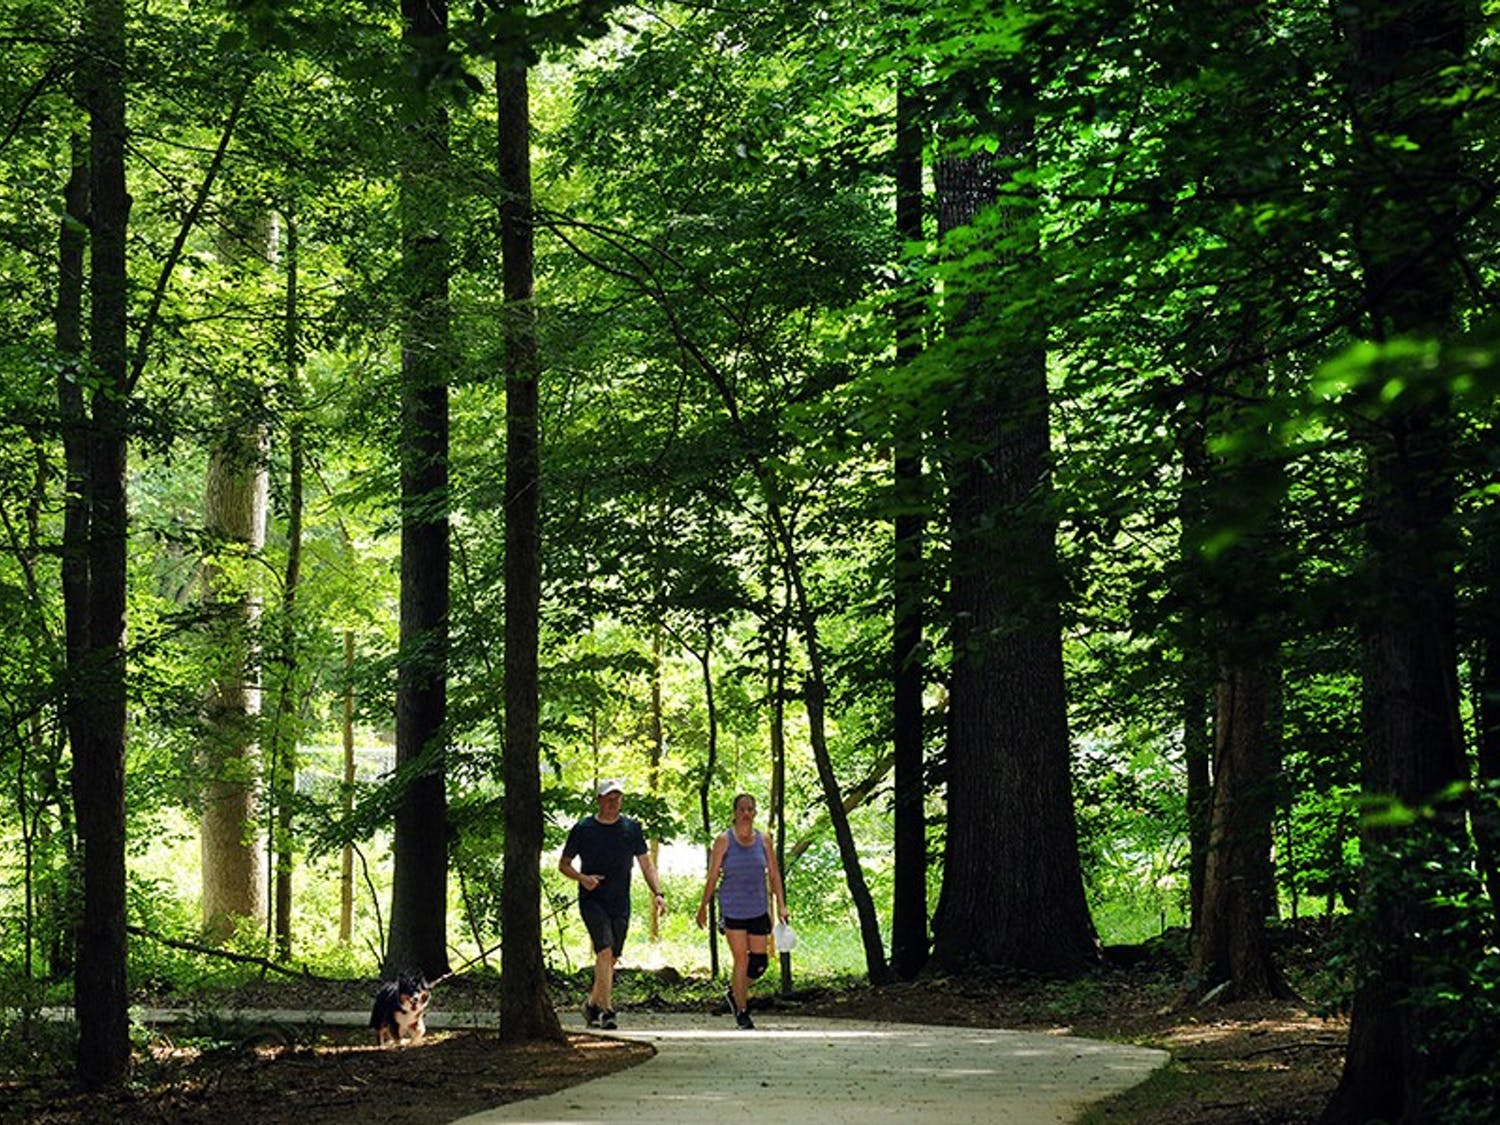 A couple walks on a local greenway in Orange County. Photo courtesy of Wes Tilghman.